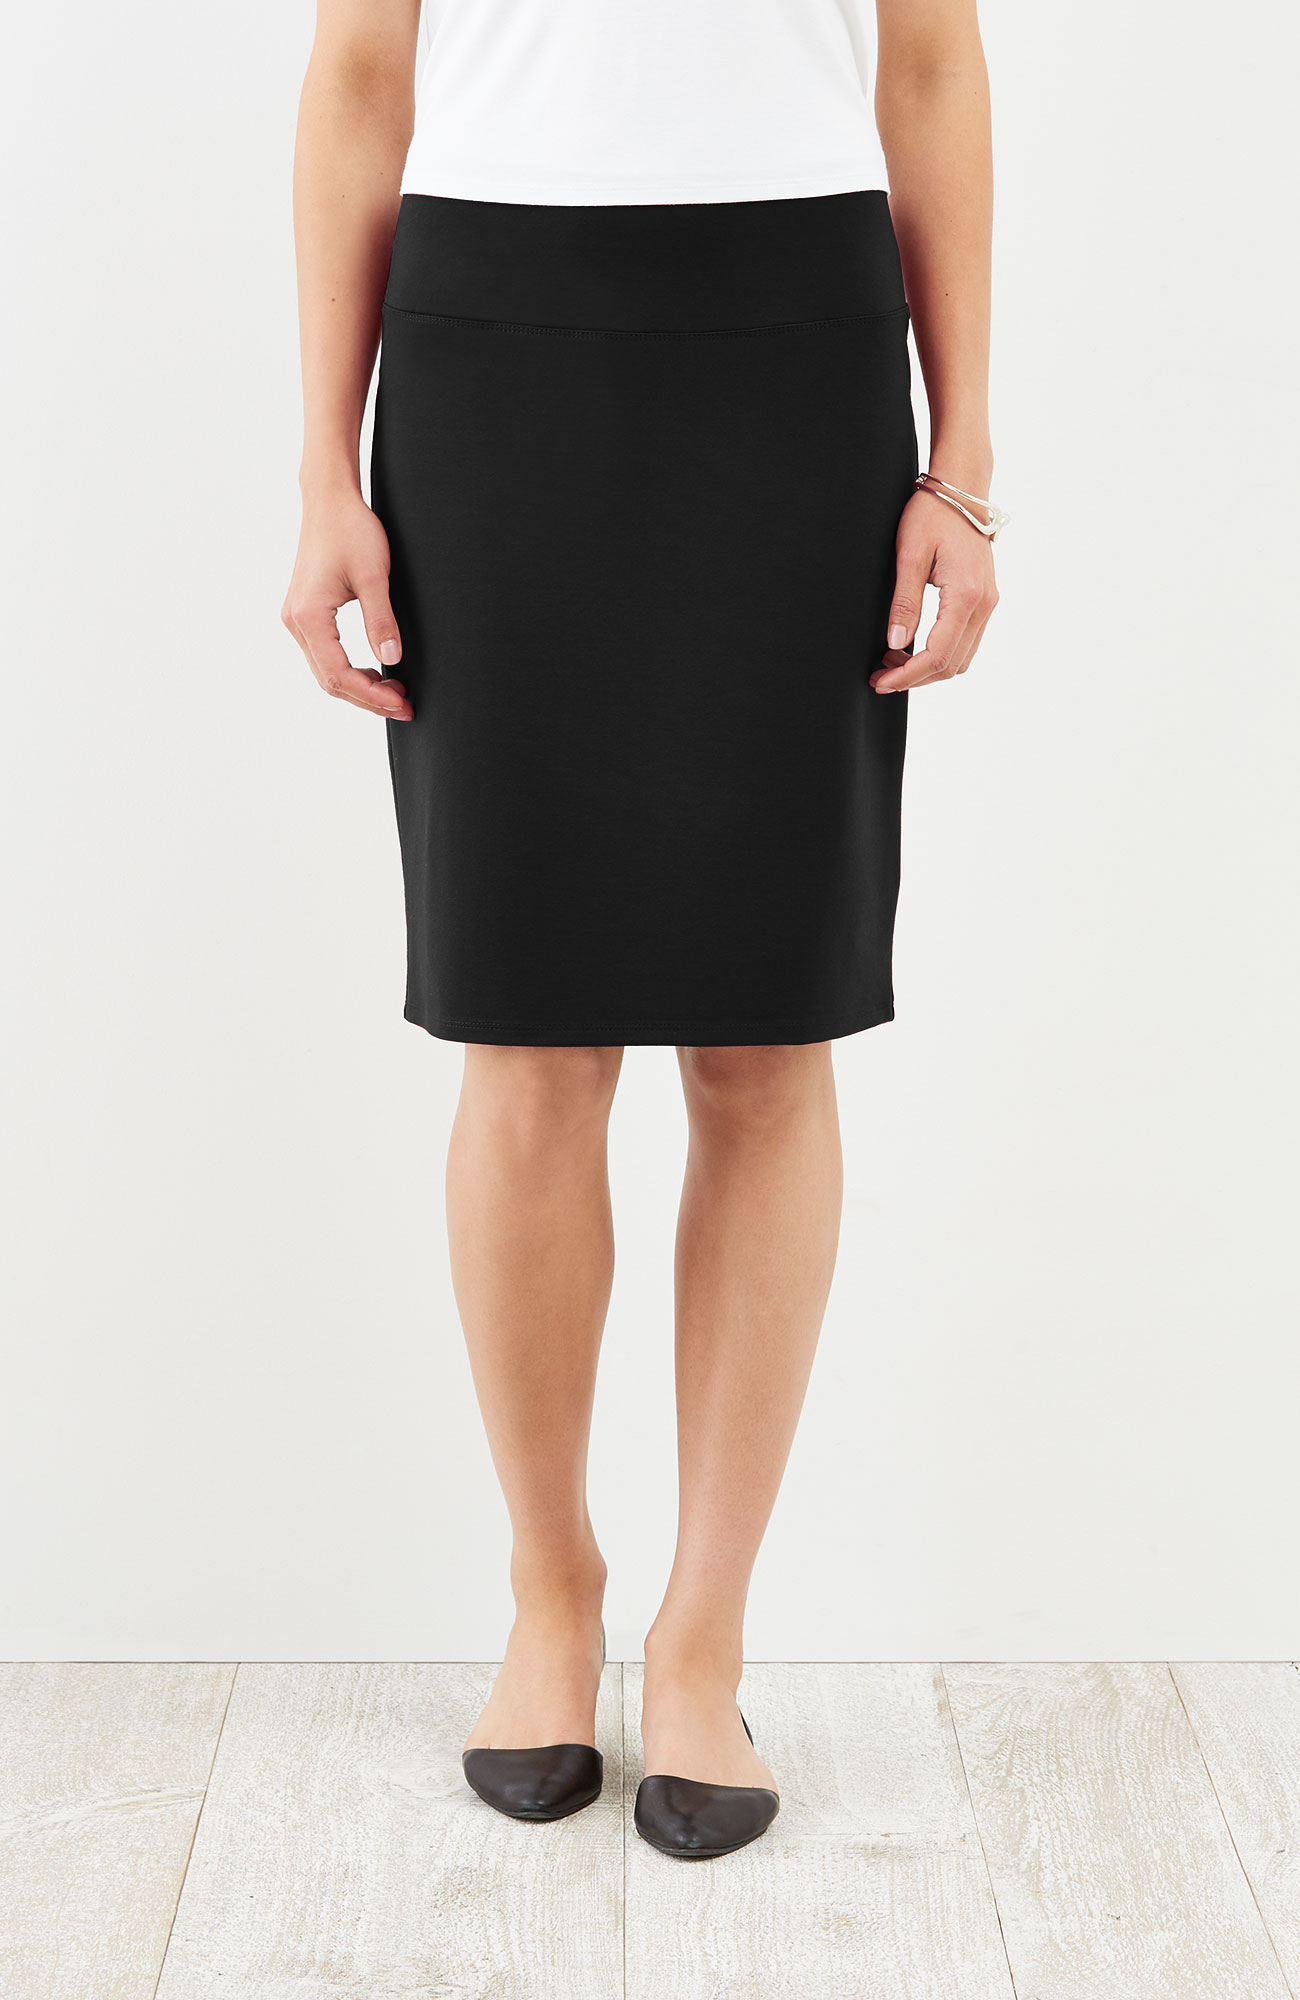 Wearever Smooth-Fit pencil skirt